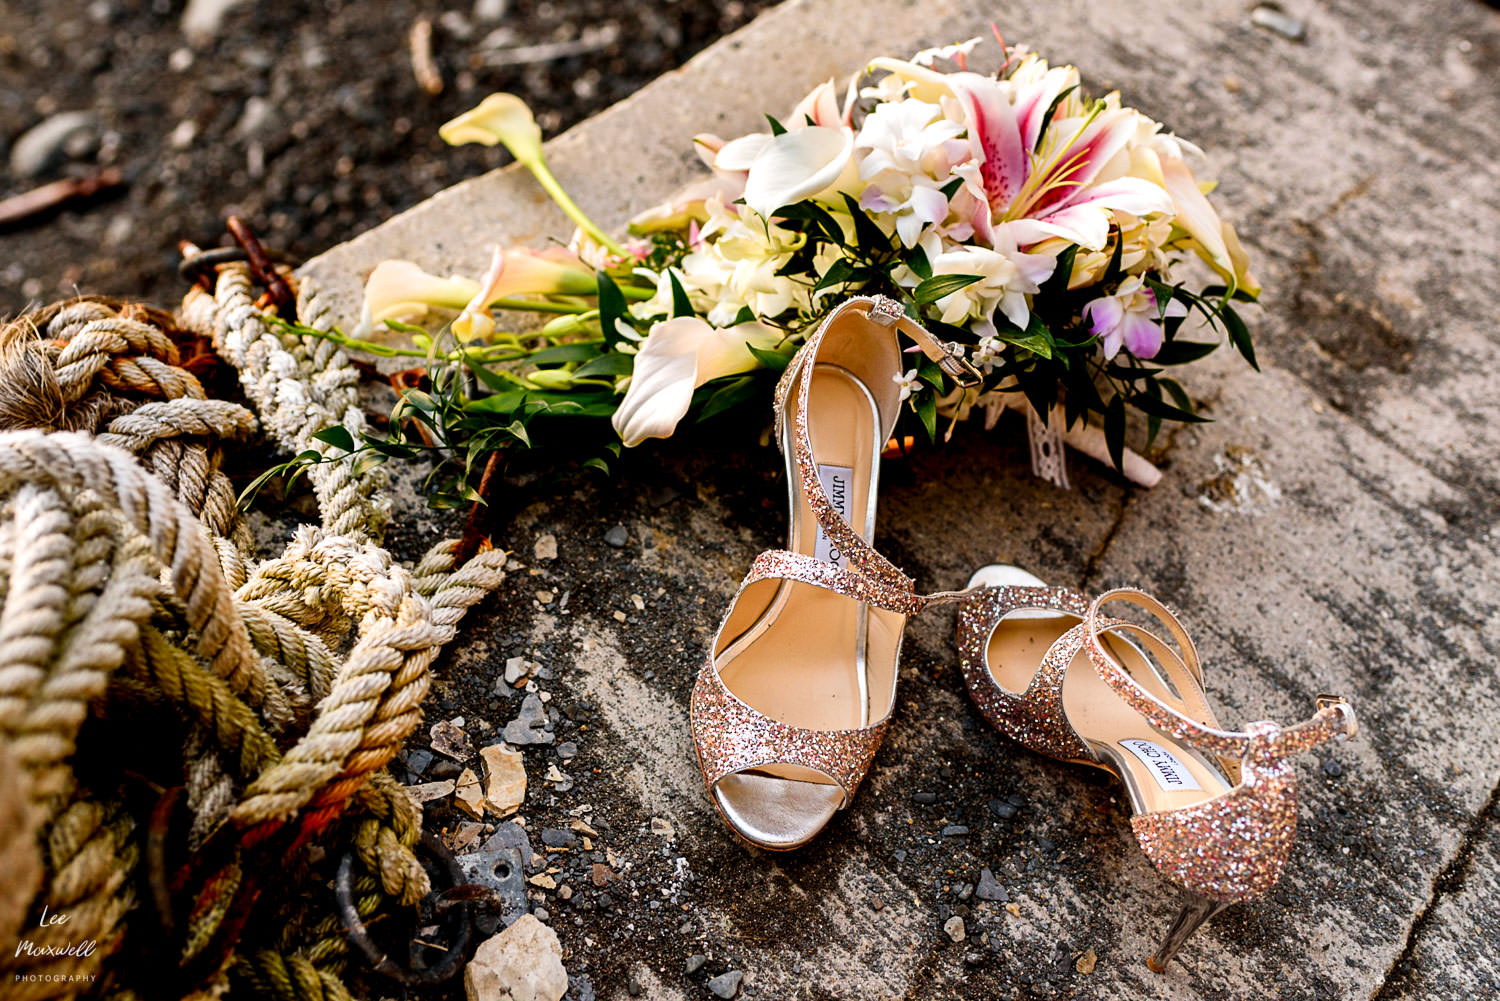 Jimmy Choo shoes at beach wedding